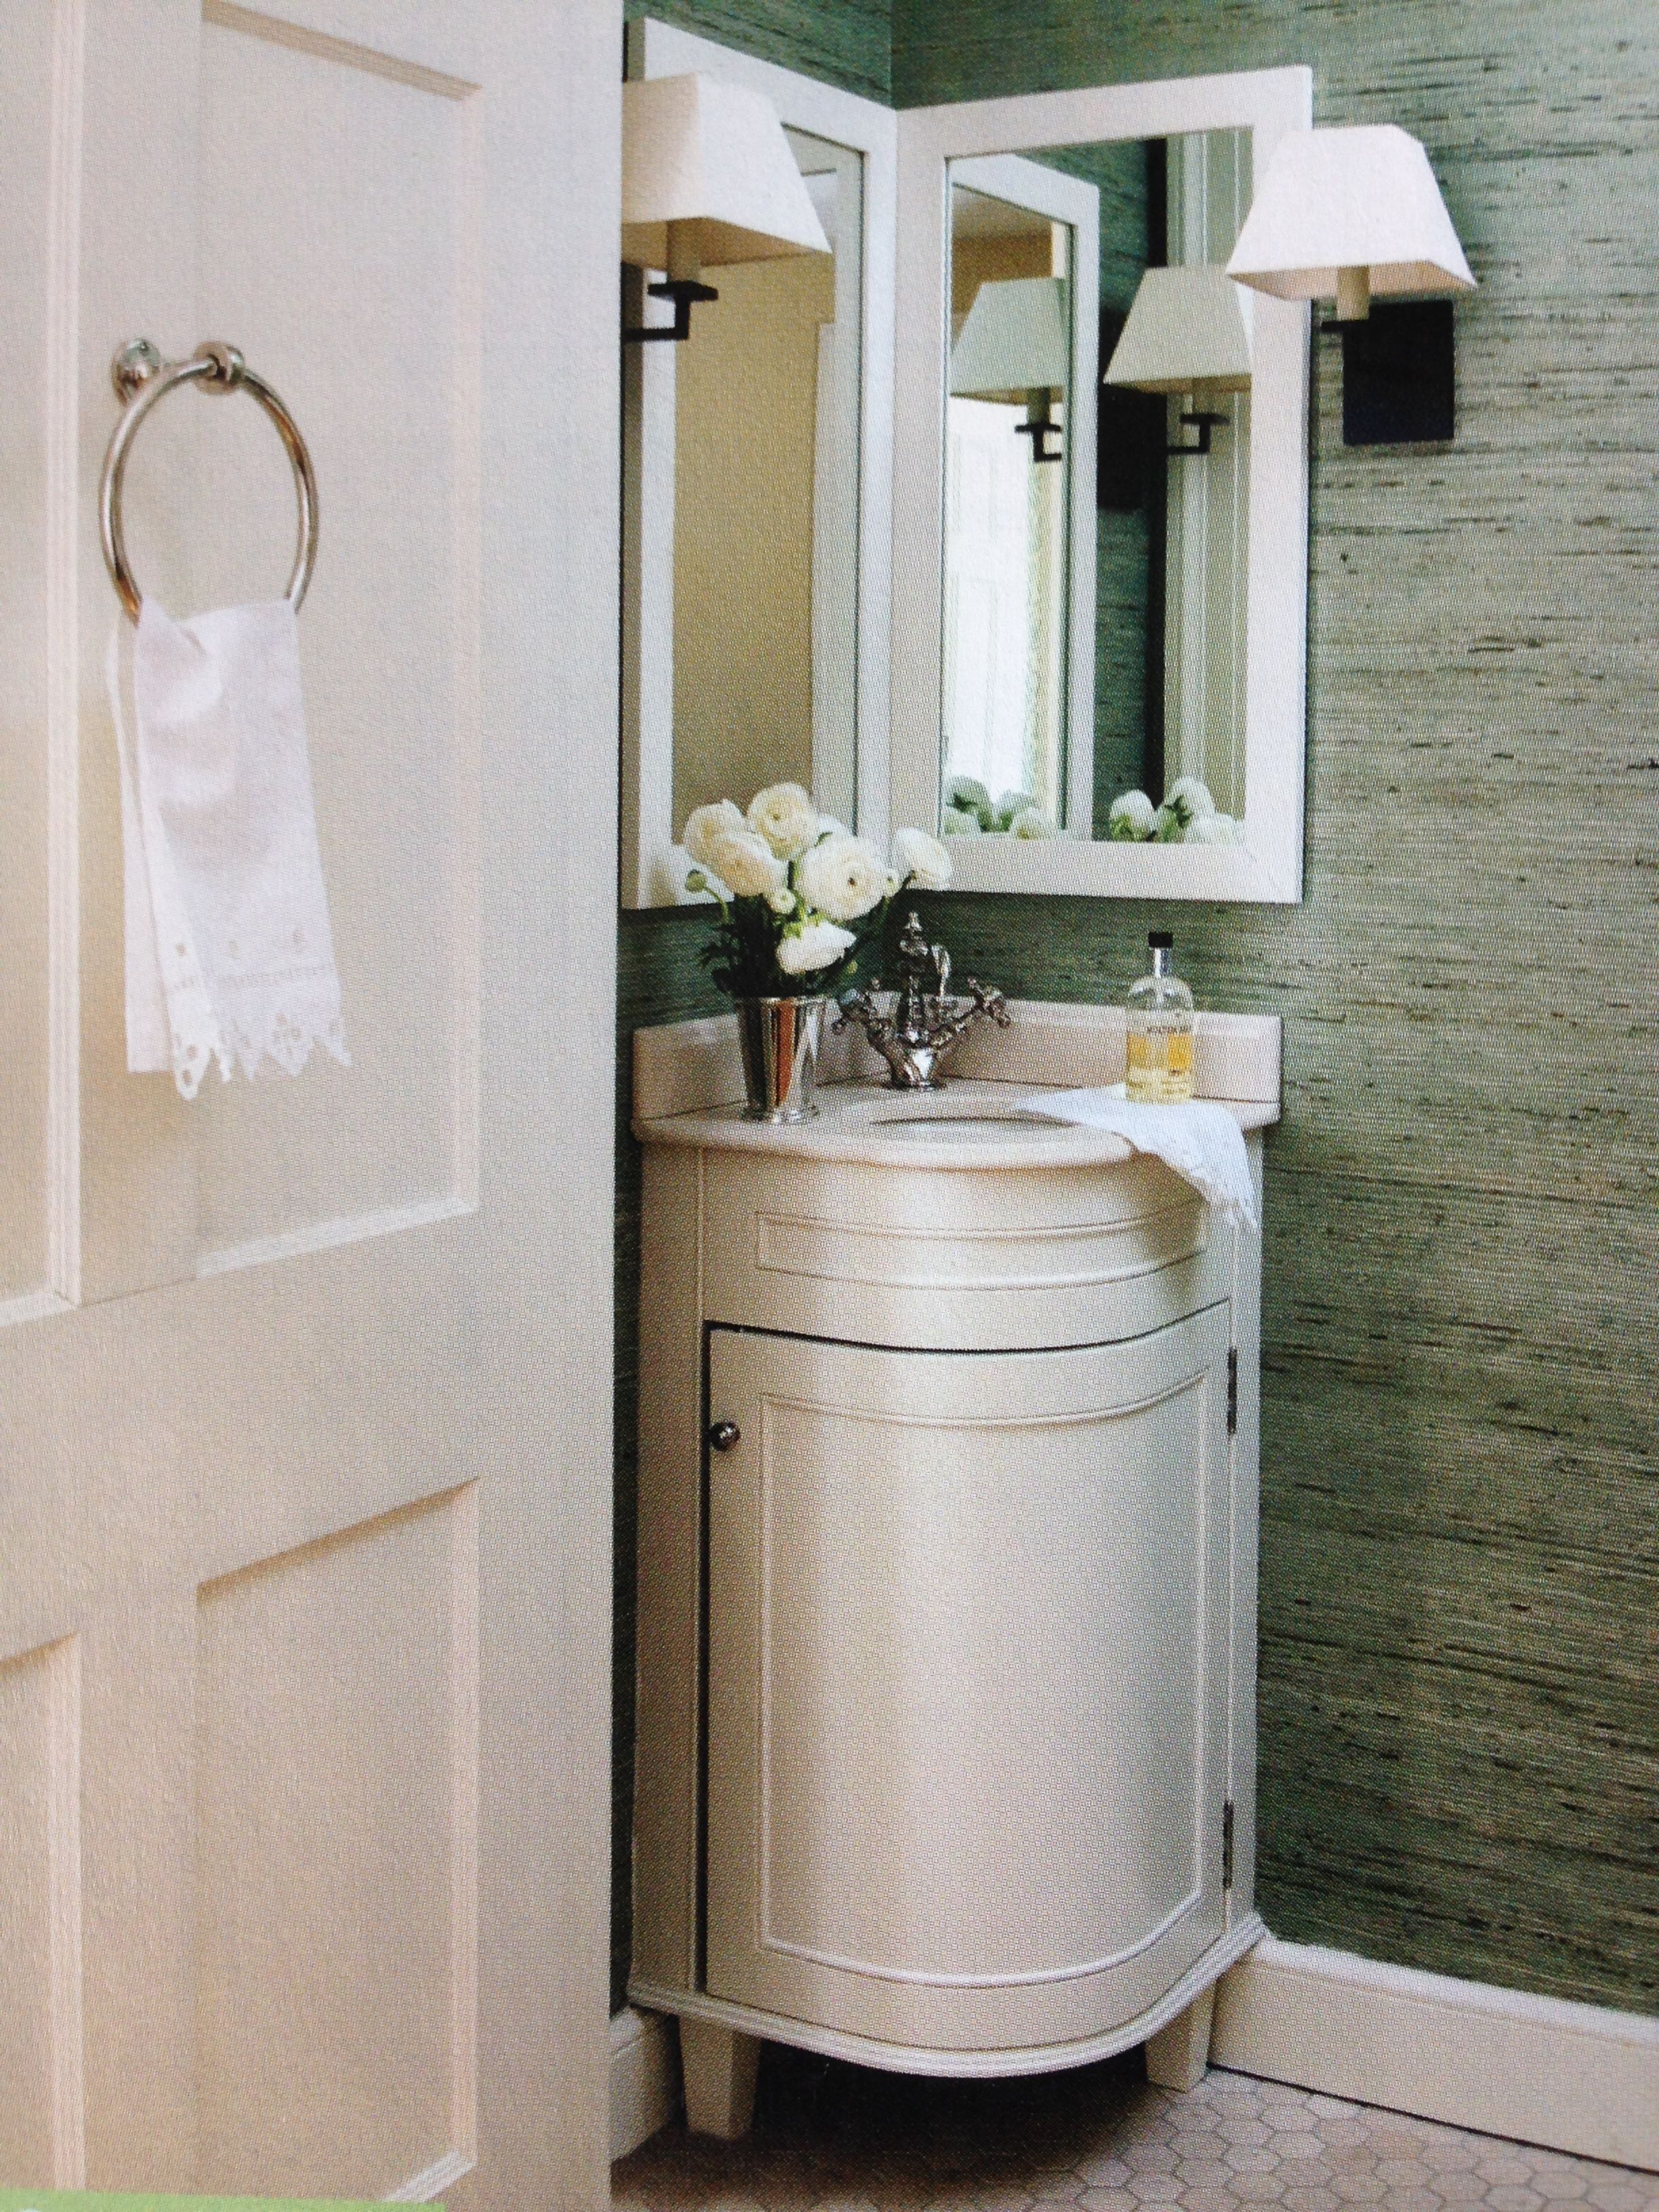 Bathroom Corner Mirror Perfect For Small Powder Room Love The Corner Vanity For The